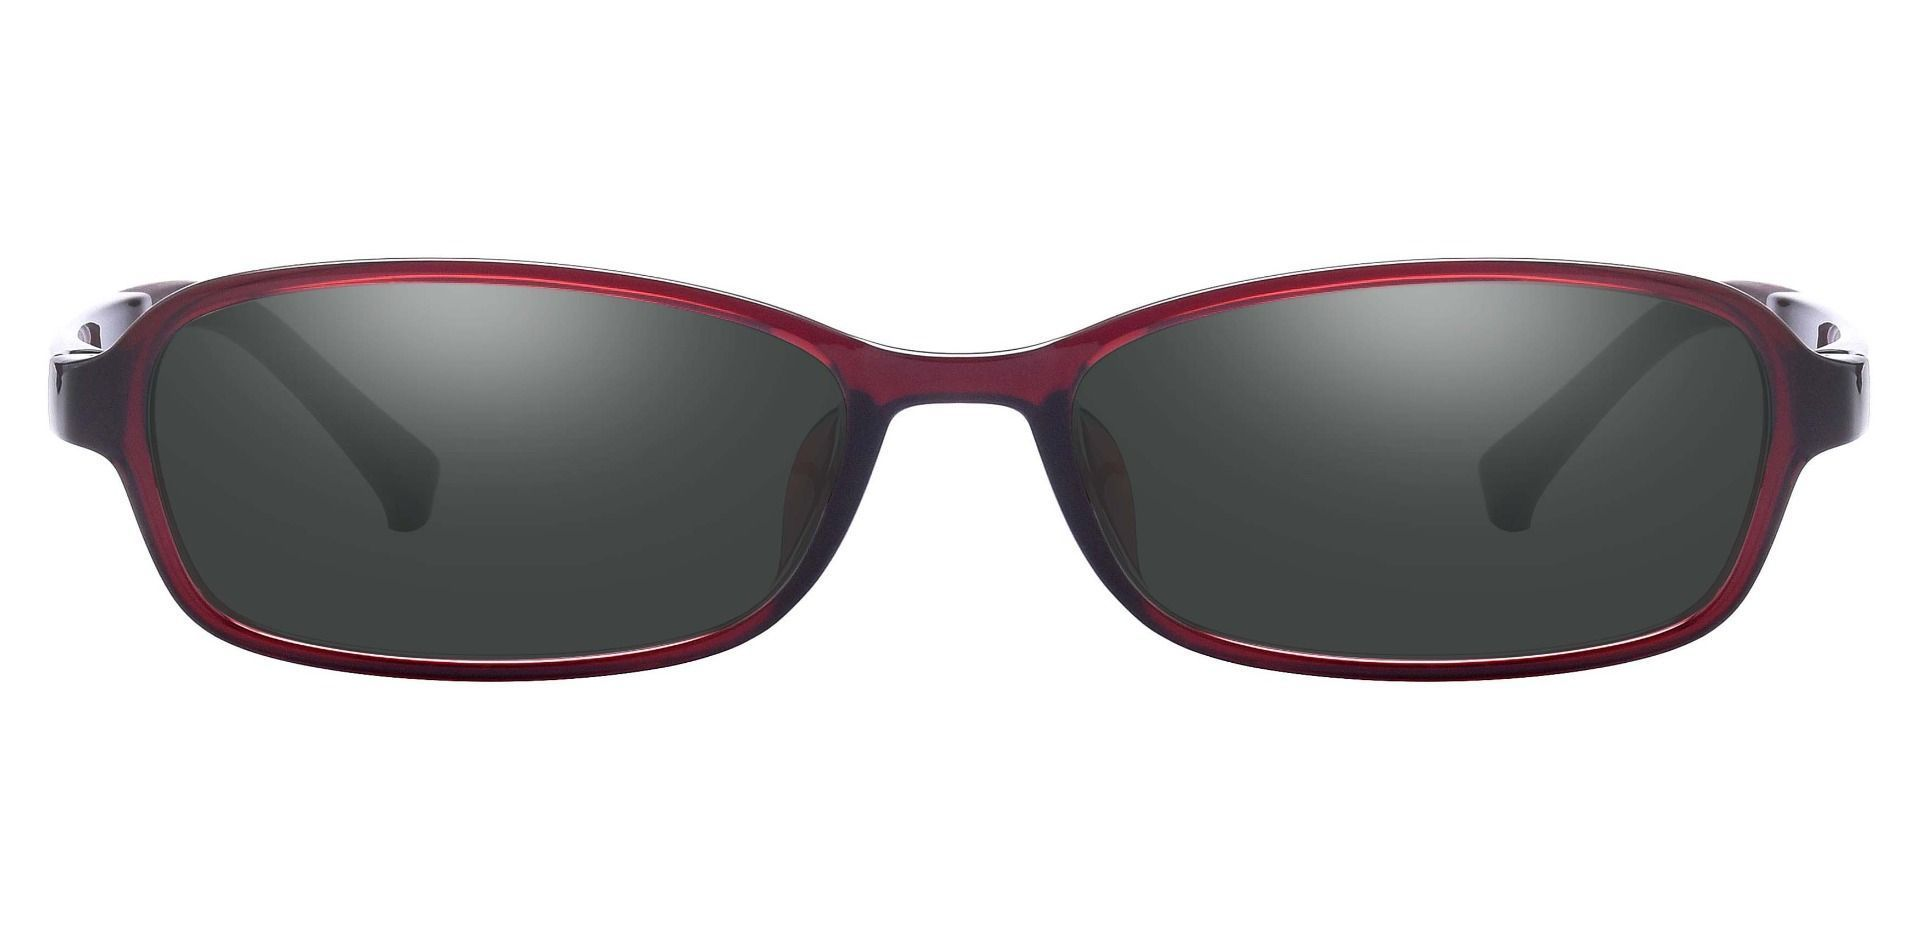 Hollis Rectangle Prescription Sunglasses - Red Frame With Gray Lenses